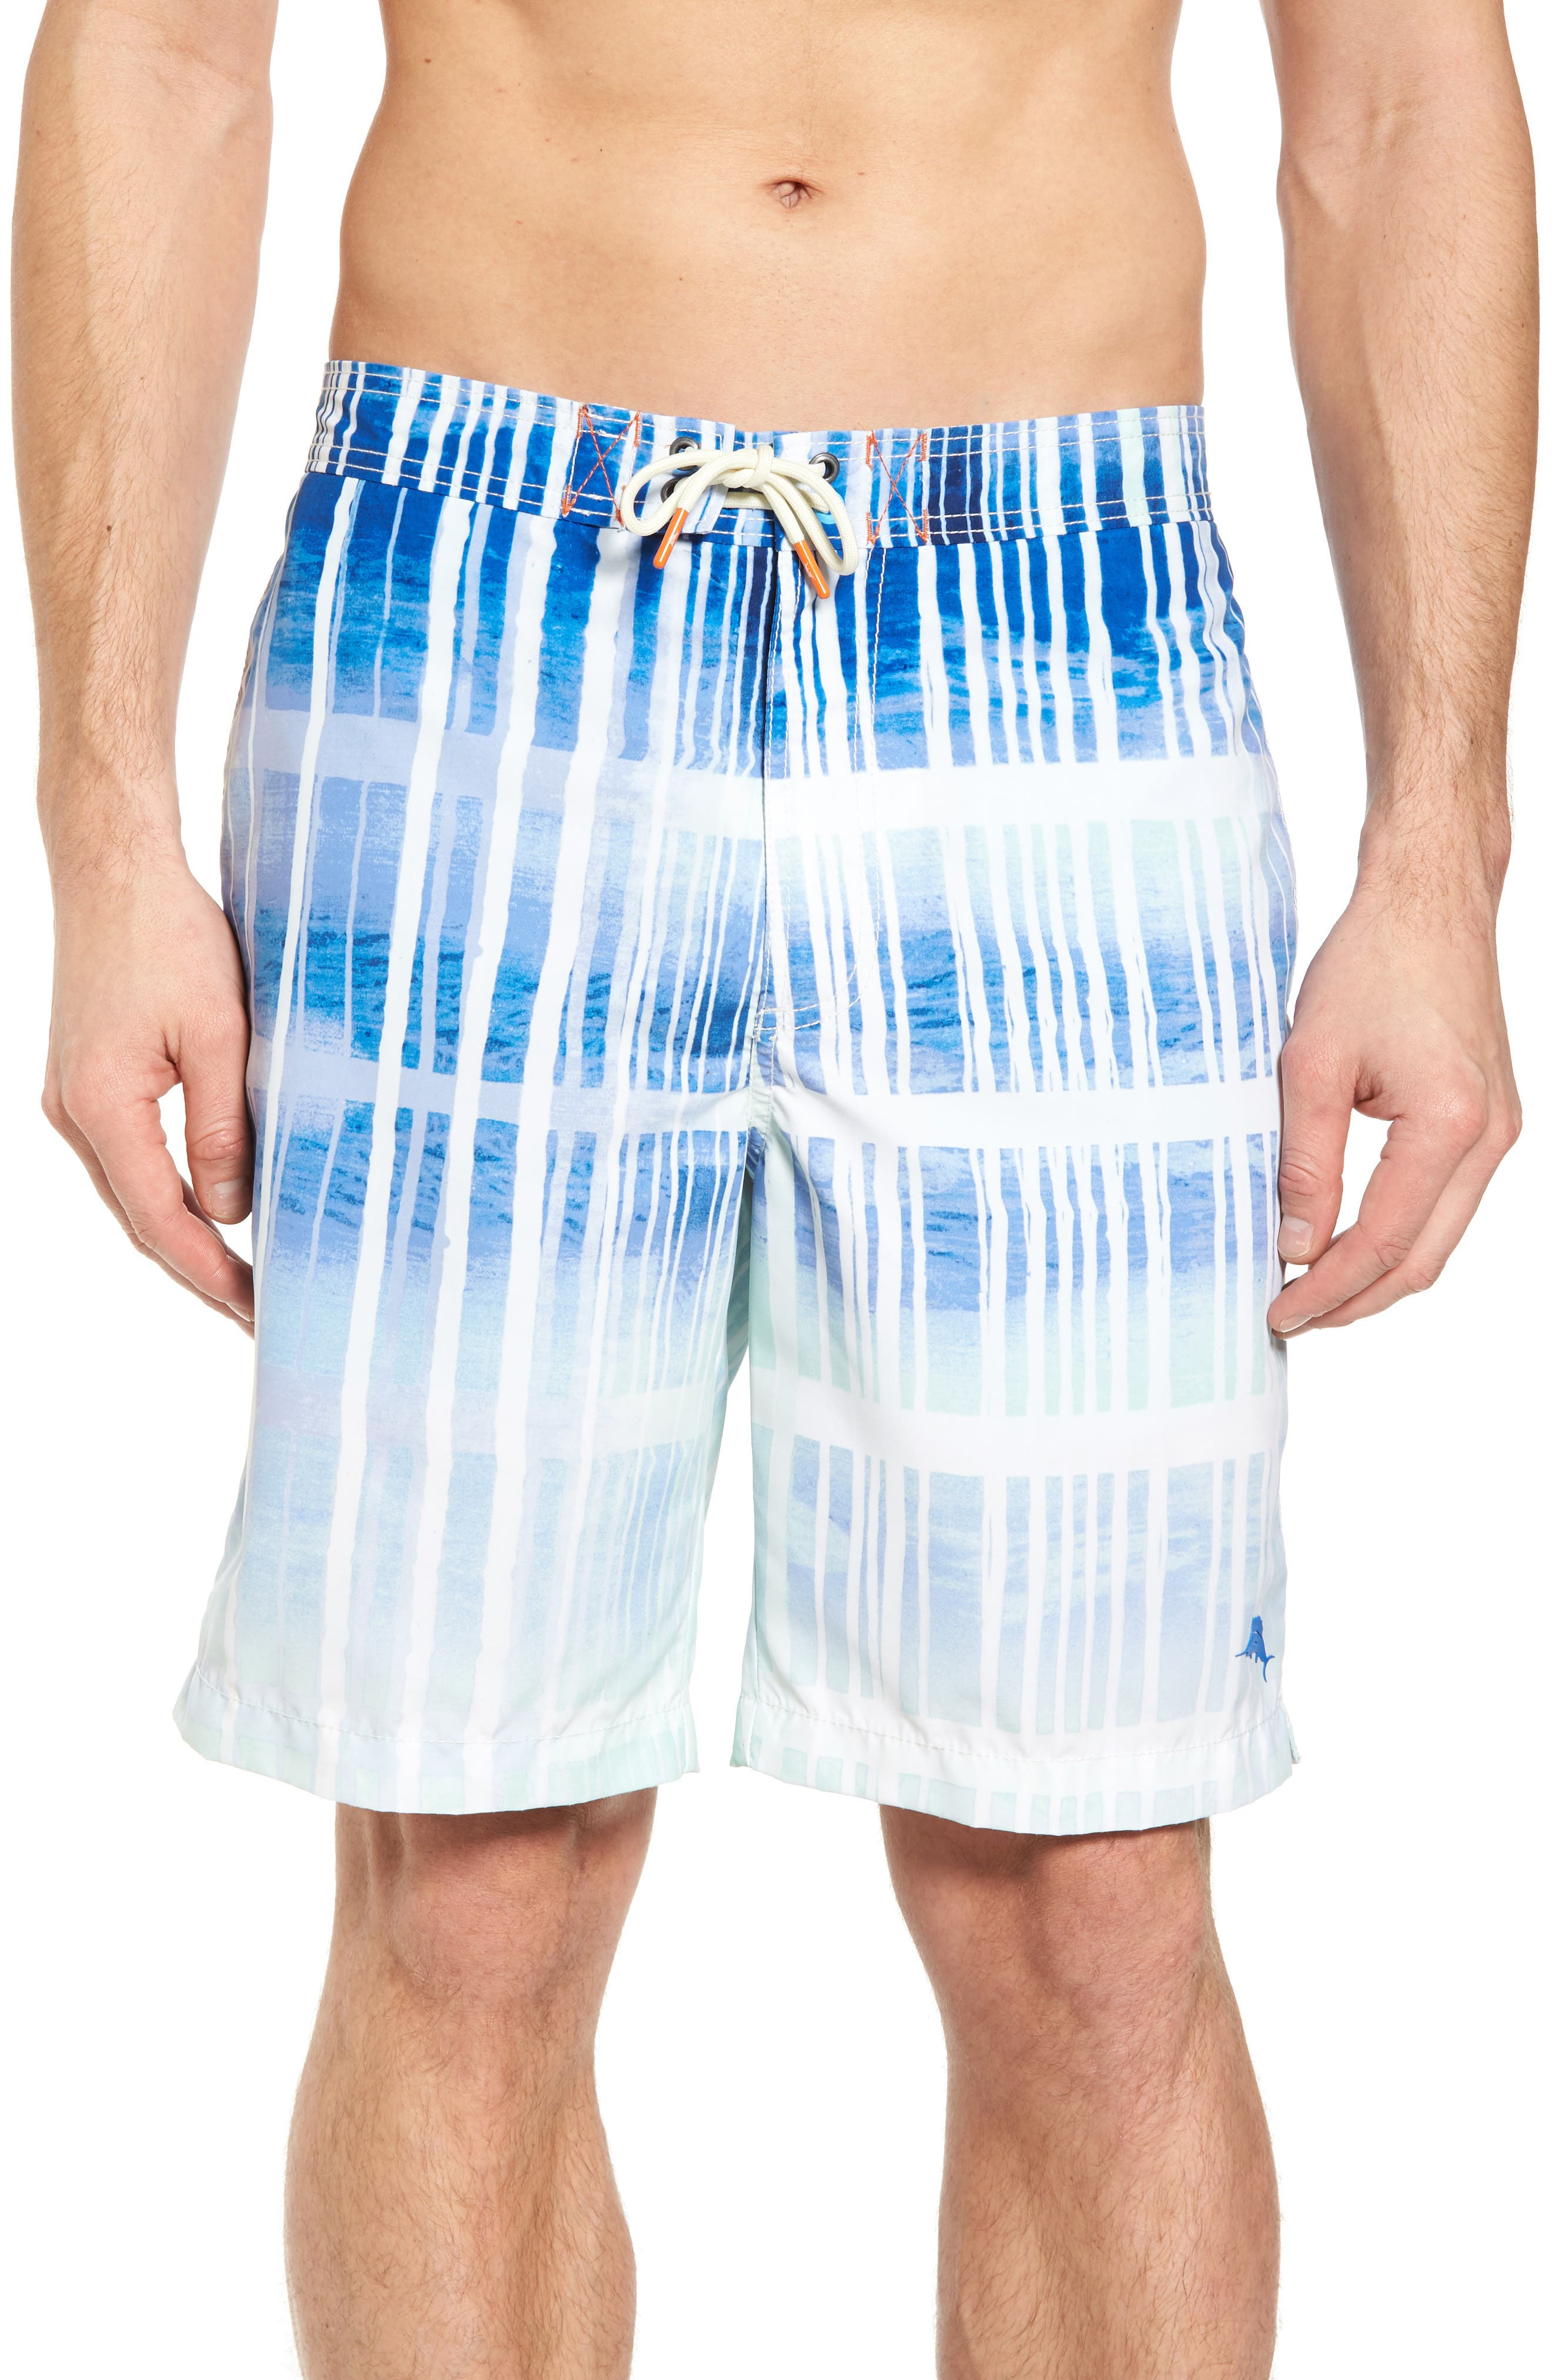 Baja Okeechobee Board Shorts,                             Main thumbnail 1, color,                             400